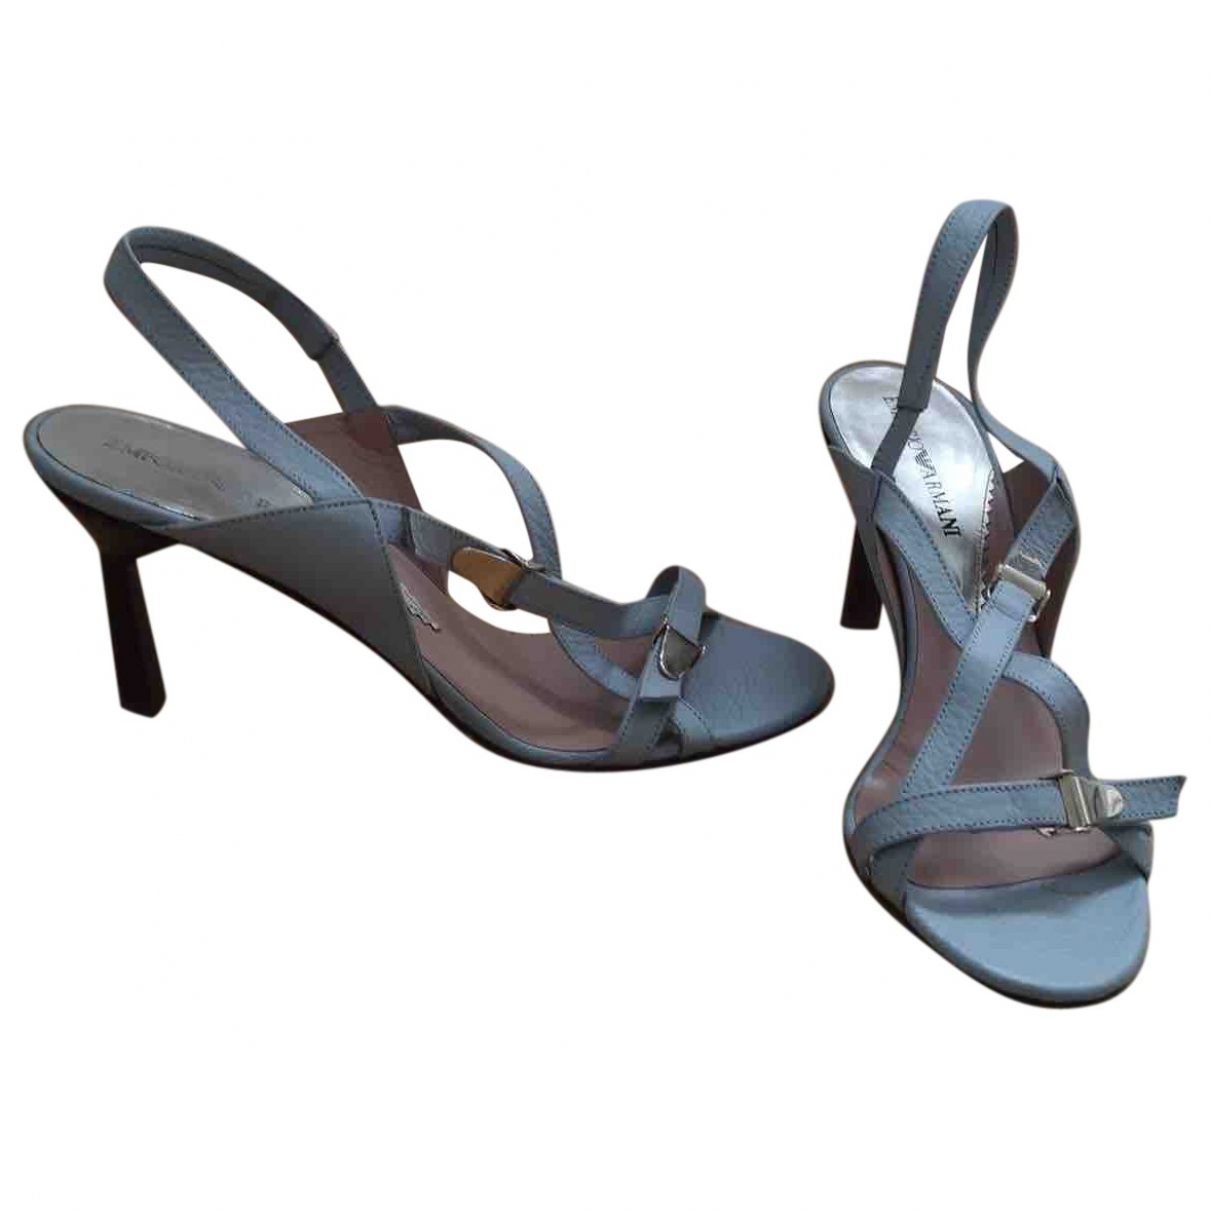 Emporio Armani \N Blue Leather Sandals for Women 37 EU